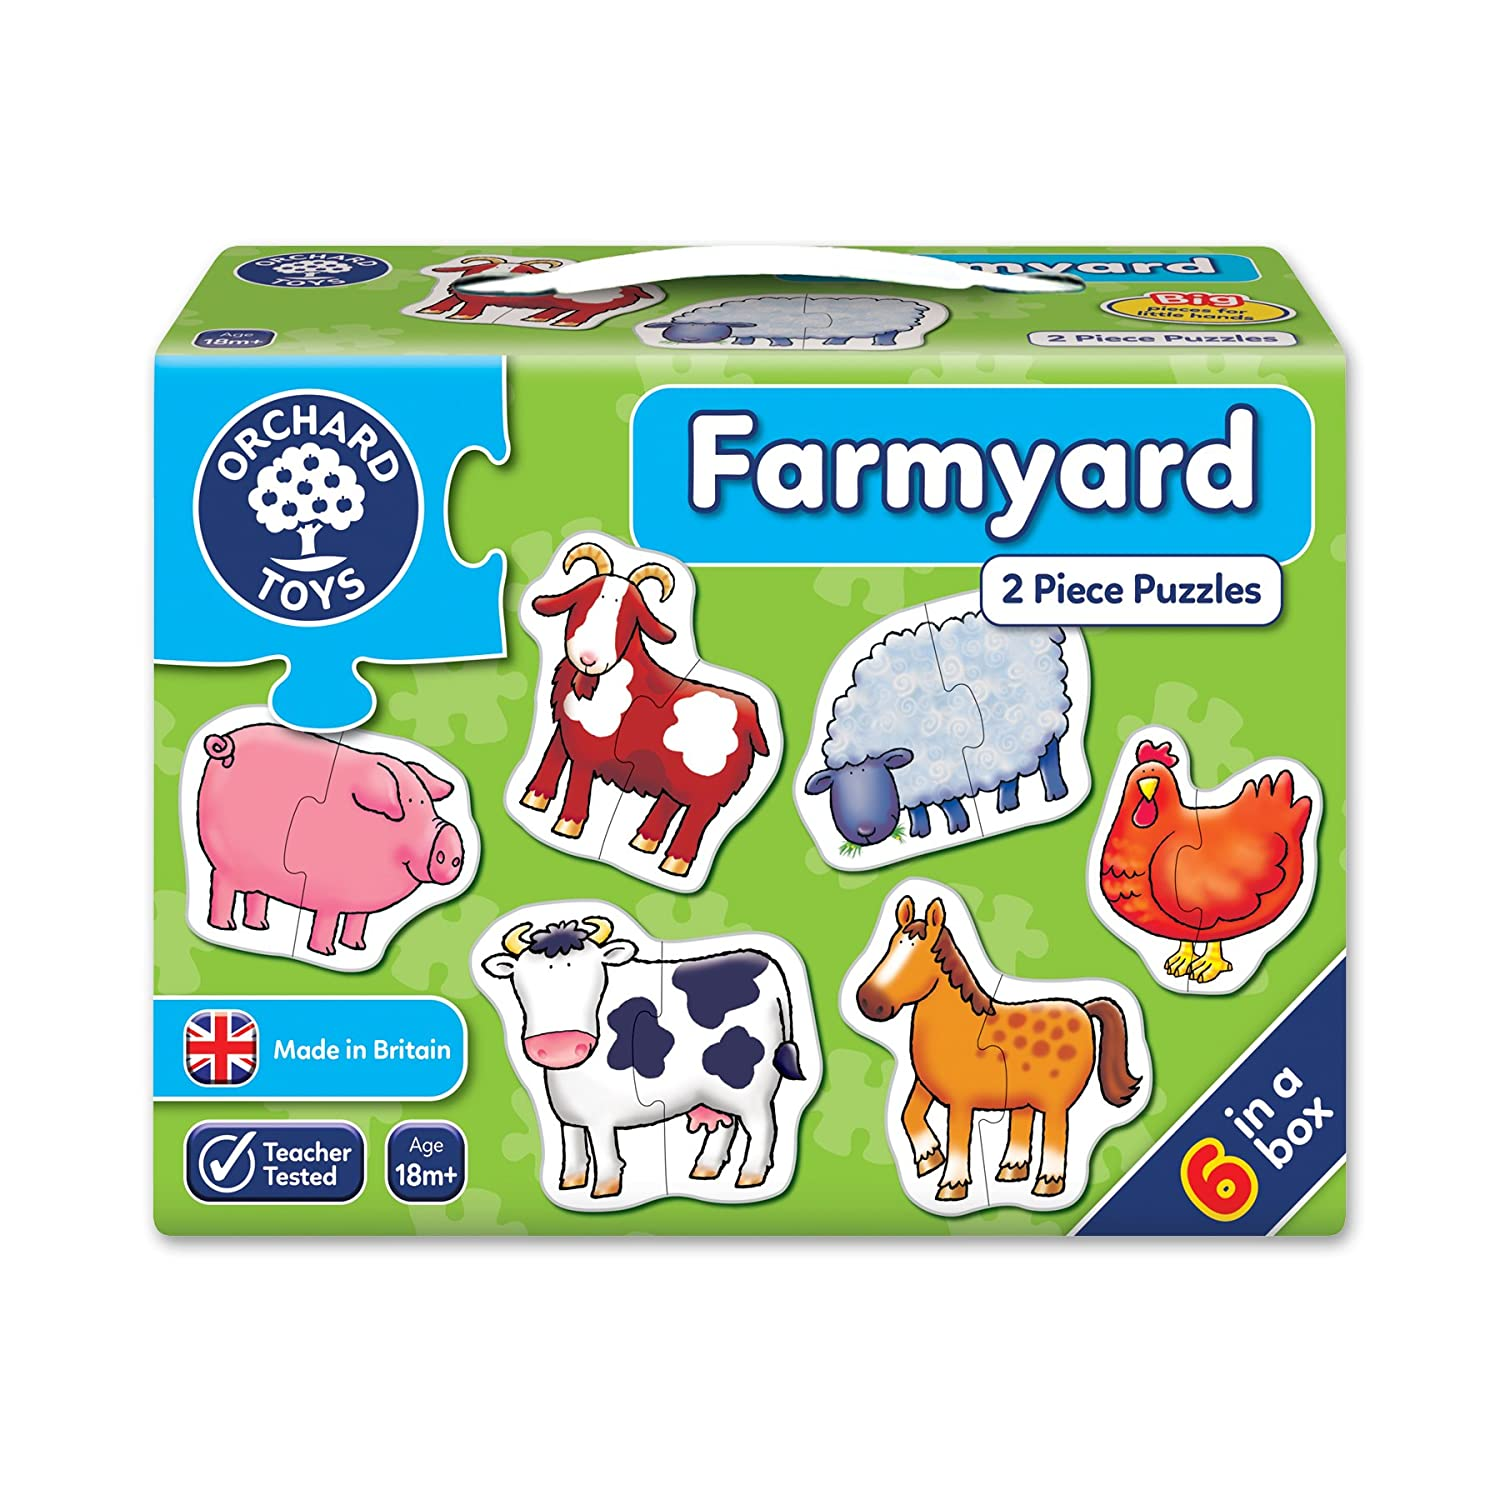 Orchard Toys Farmyard Jigsaw Puzzle 202 Children's Puzzles first jigsaws